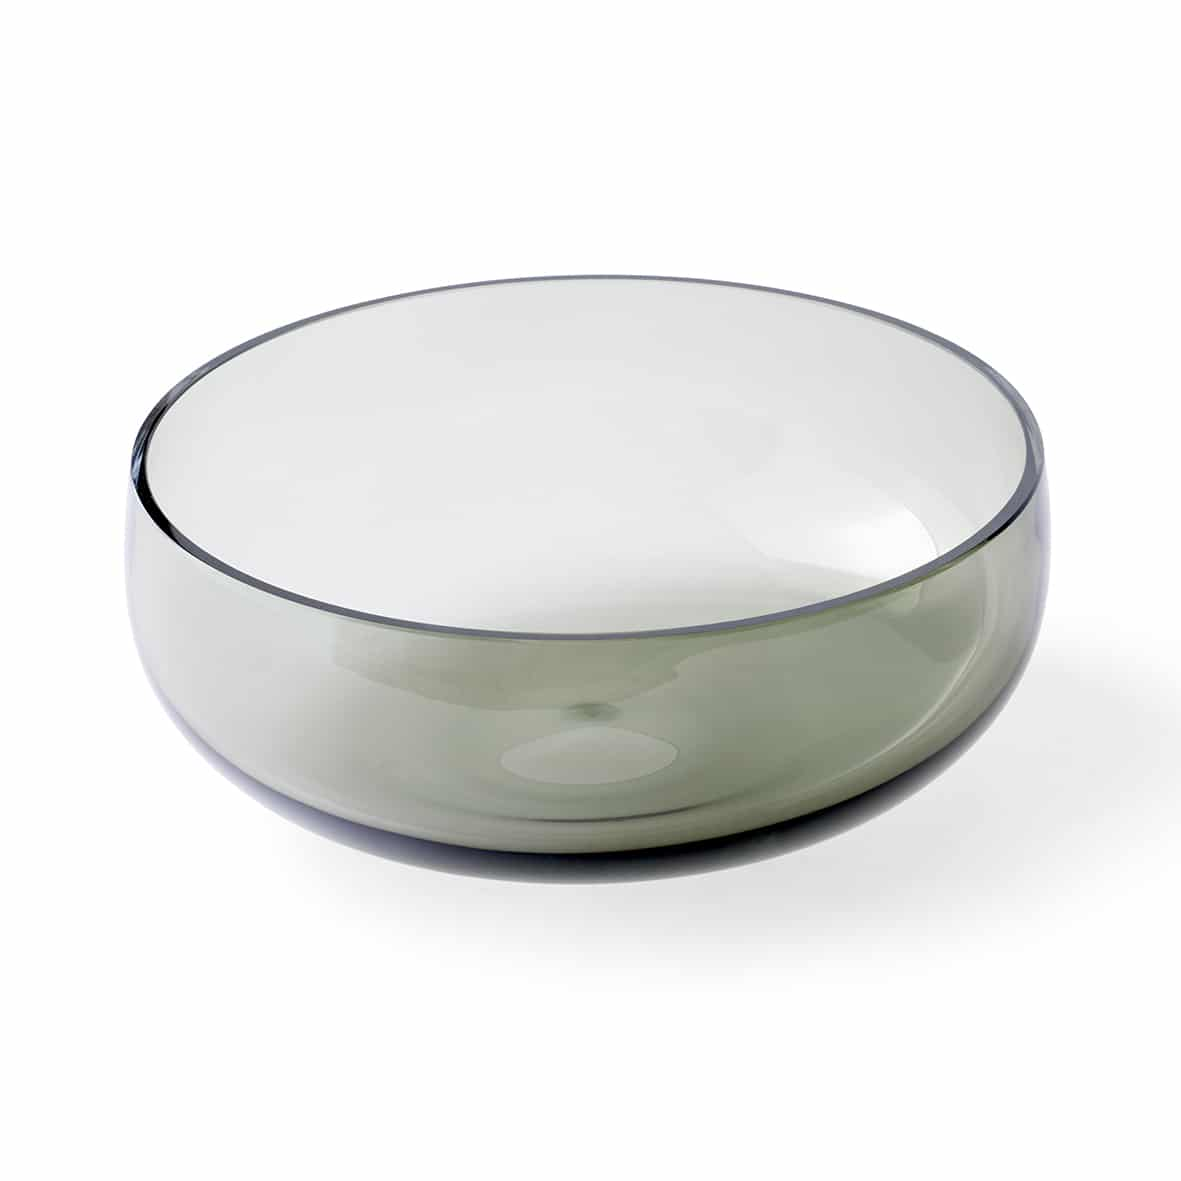 Menu Echasse bowl 29 cm, smoke